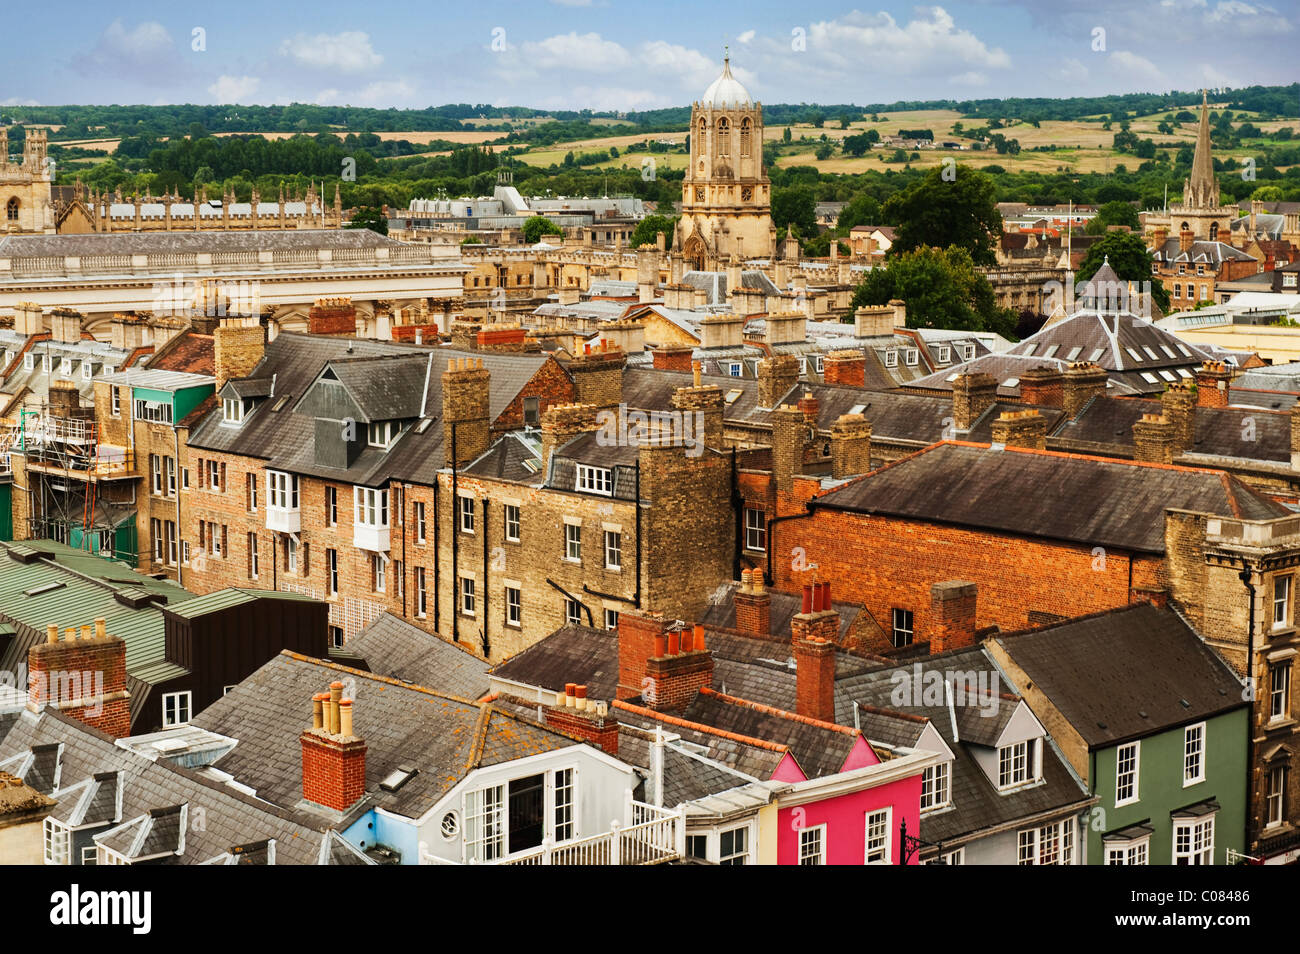 High angle view of buildings in a city, Oxford, Oxfordshire, England - Stock Image